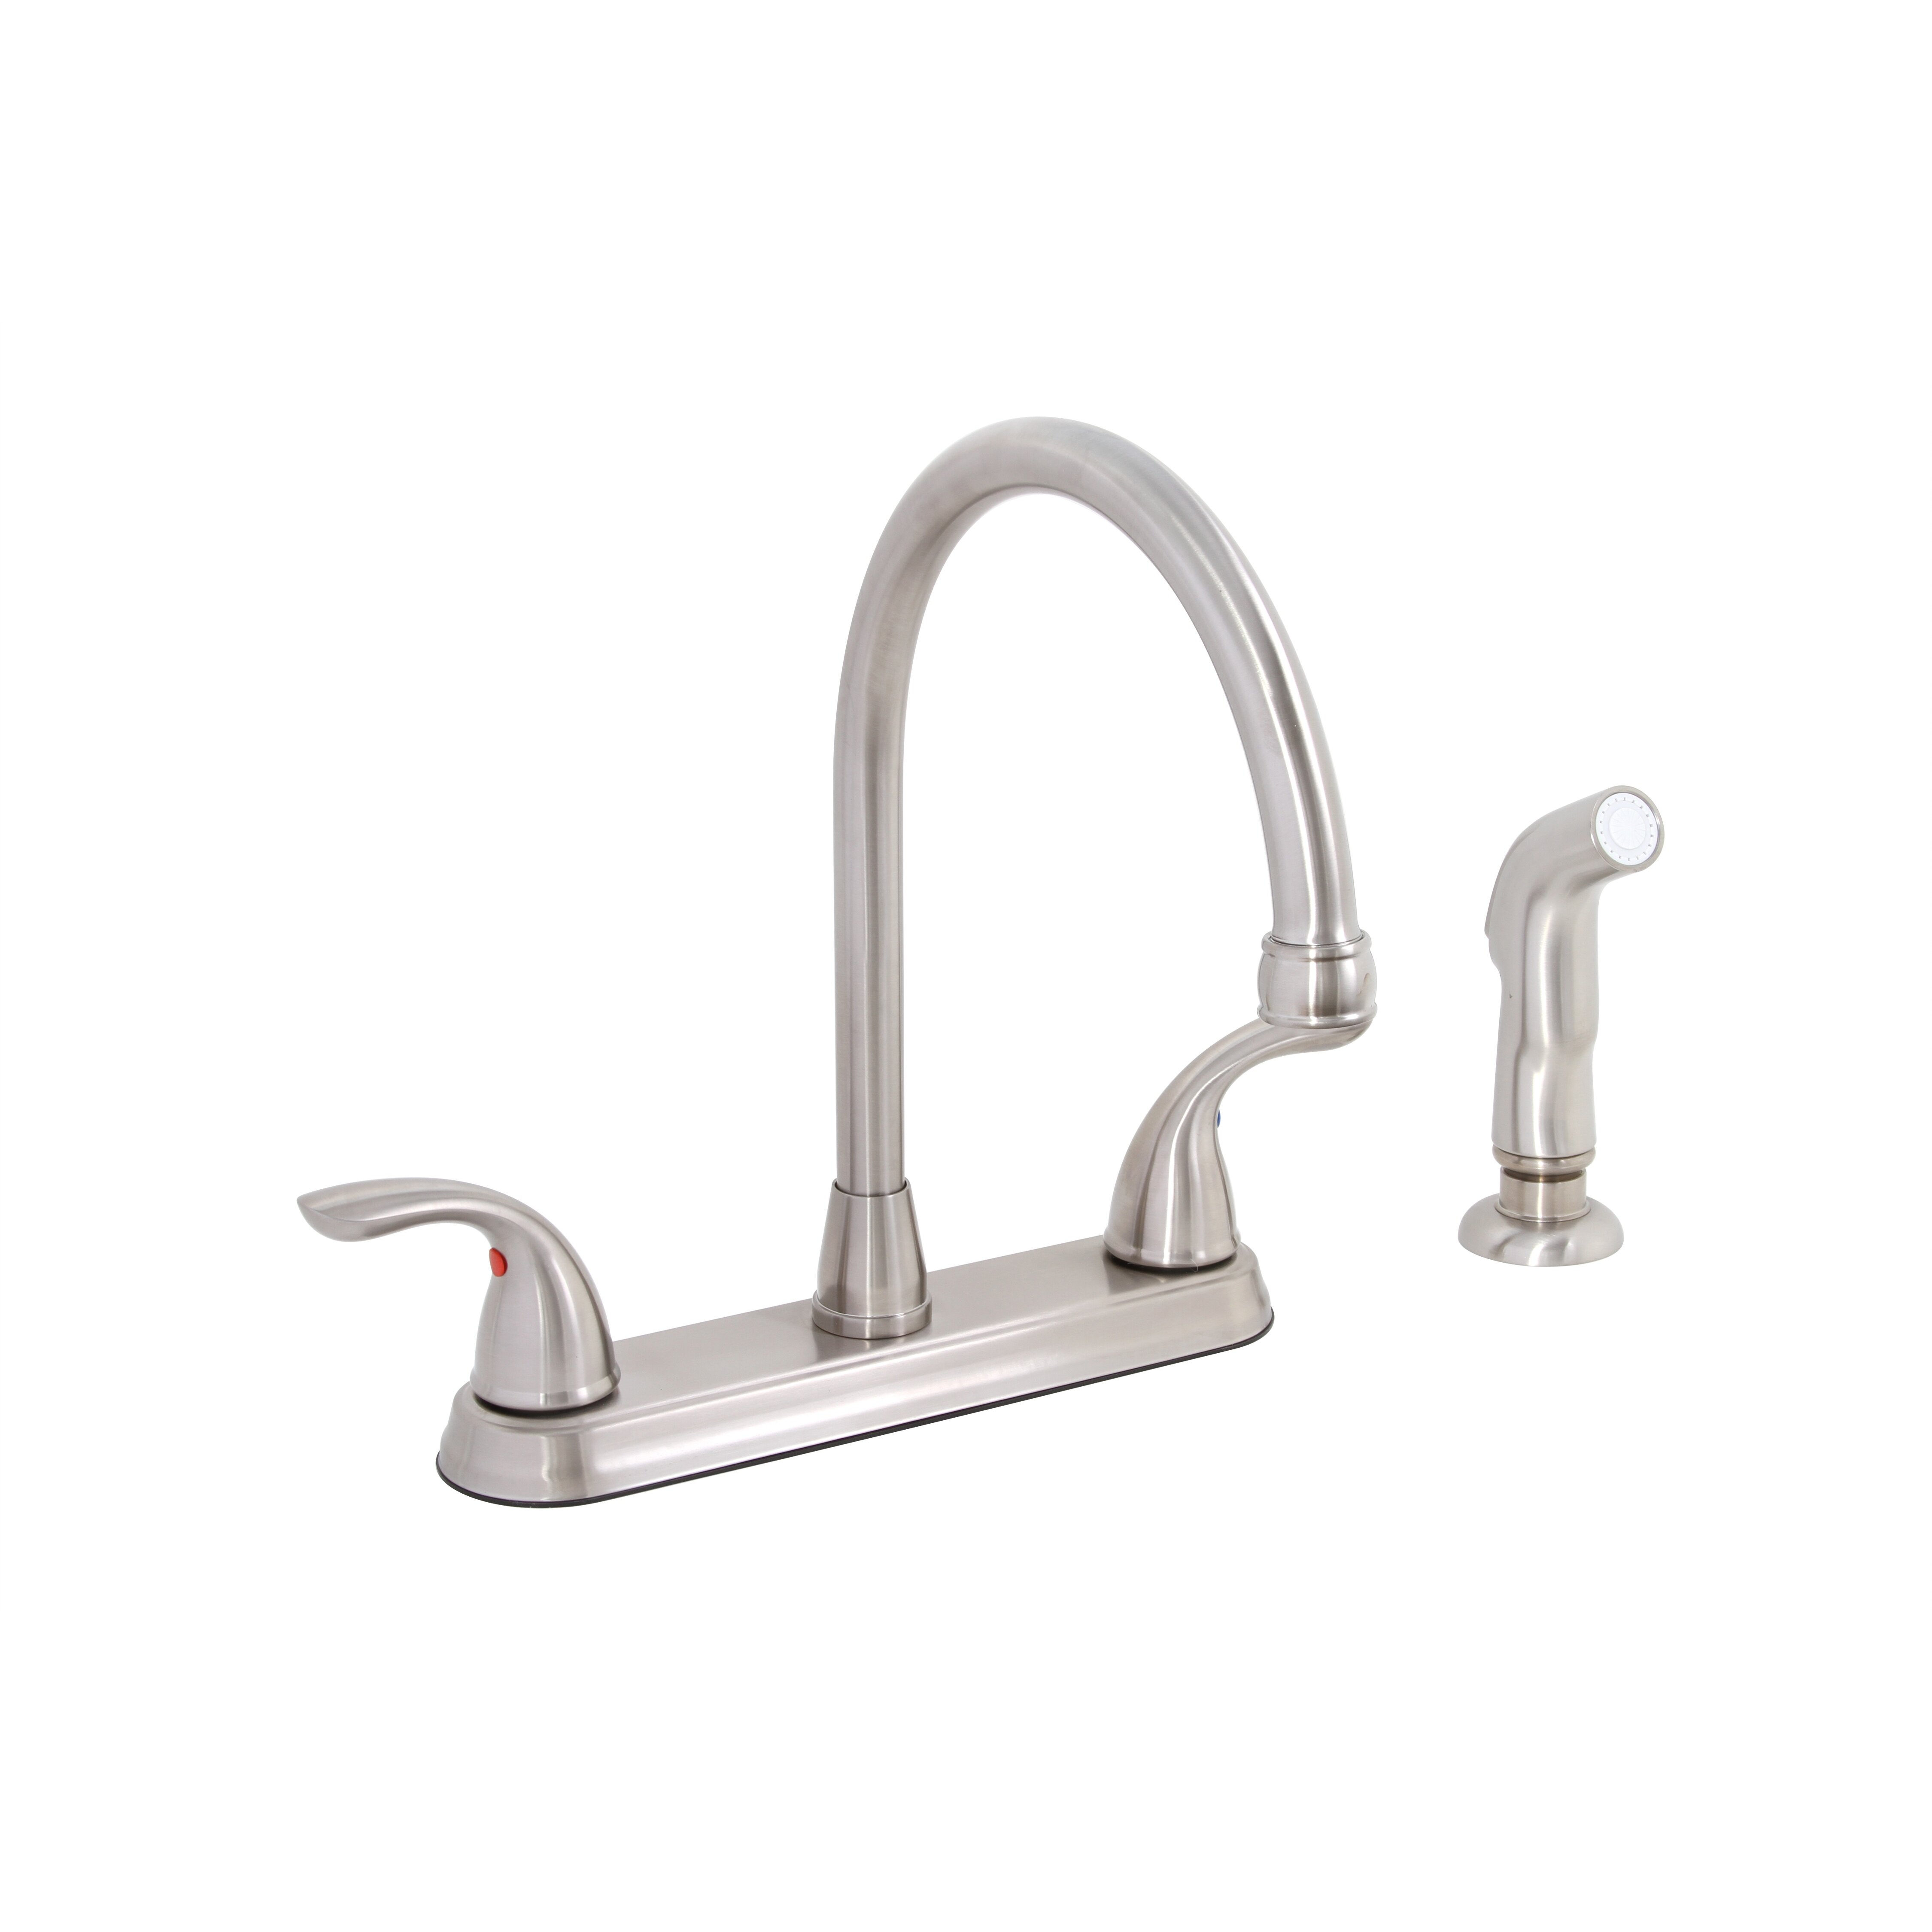 Westlake™ Double Handle Kitchen Faucet with Spray Hose